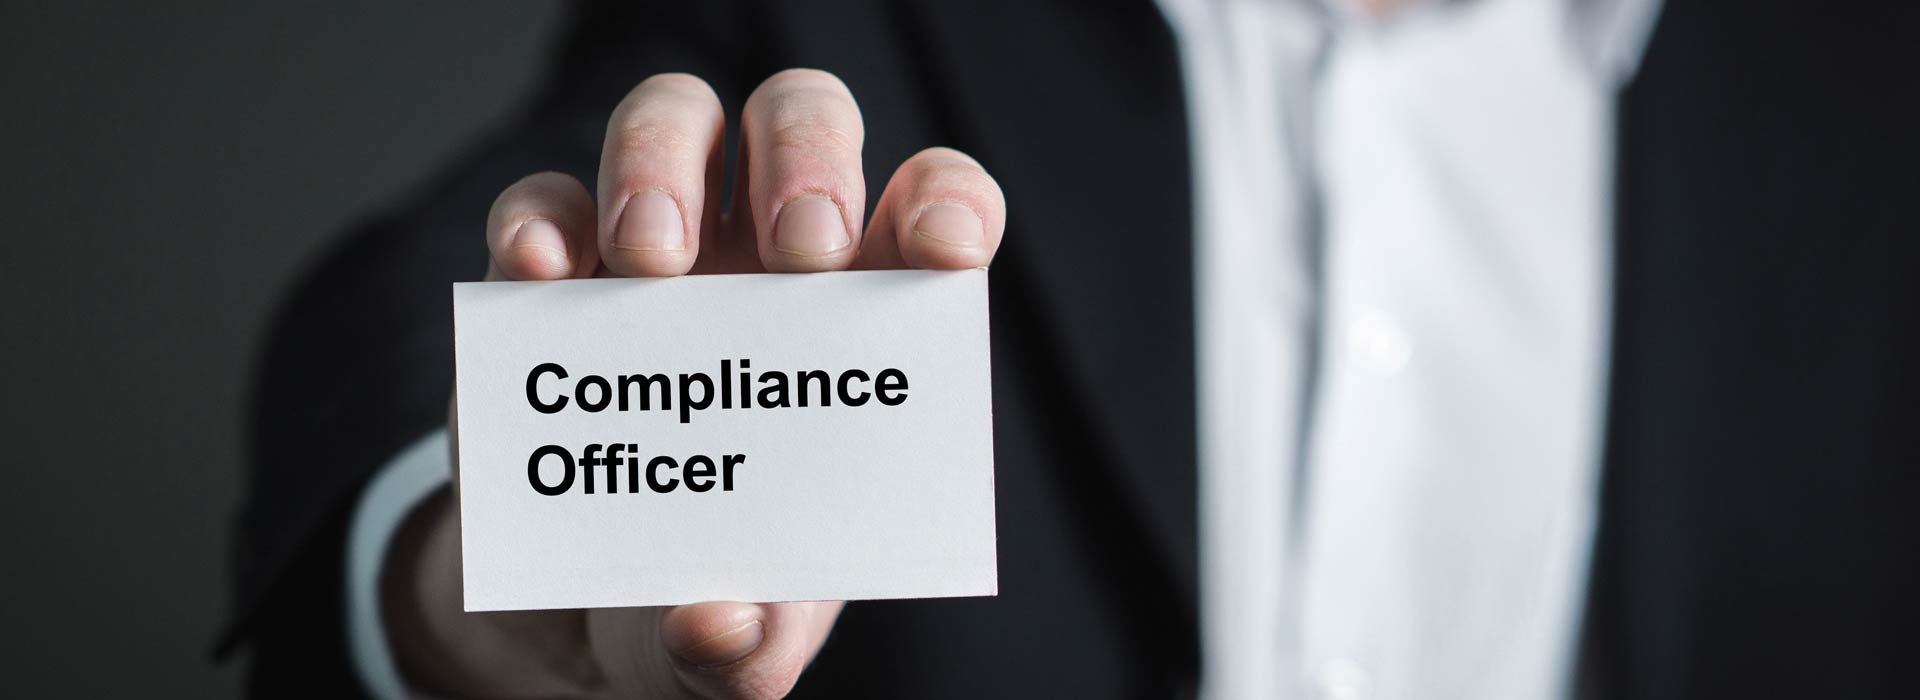 Compliance Officer | Captain Pipes Ltd.